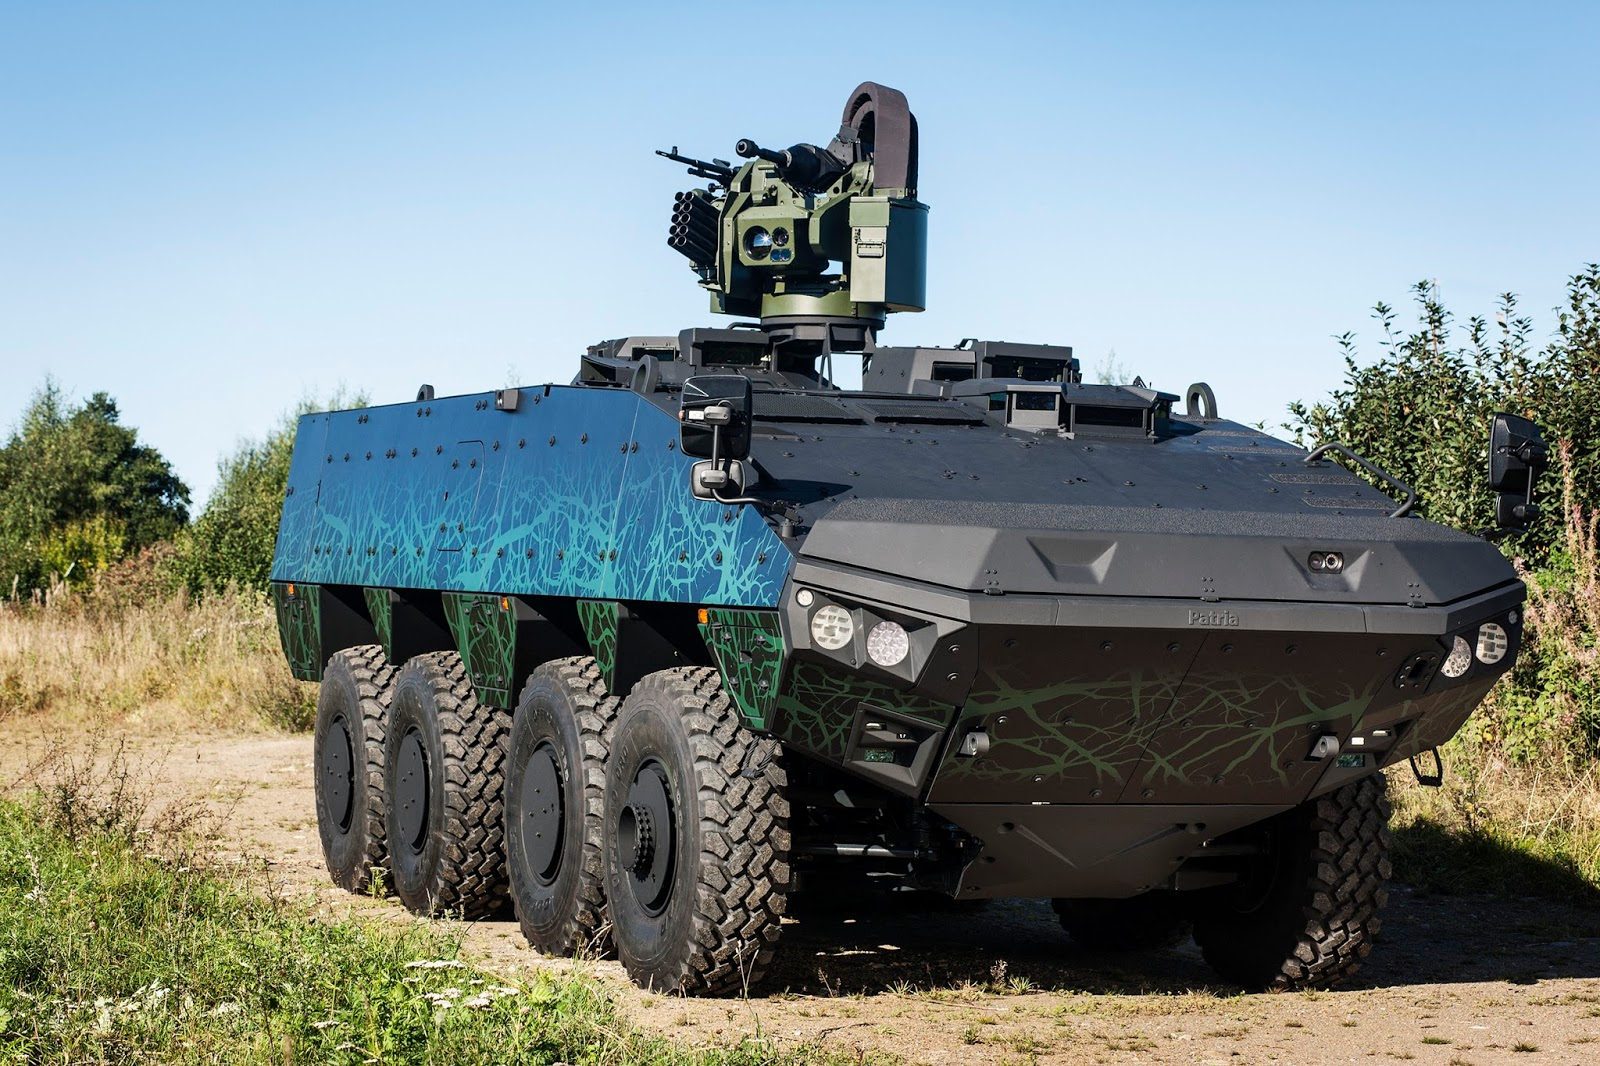 Novo veículo conceito do Armoured Modular Vehicle (AMV) Patria